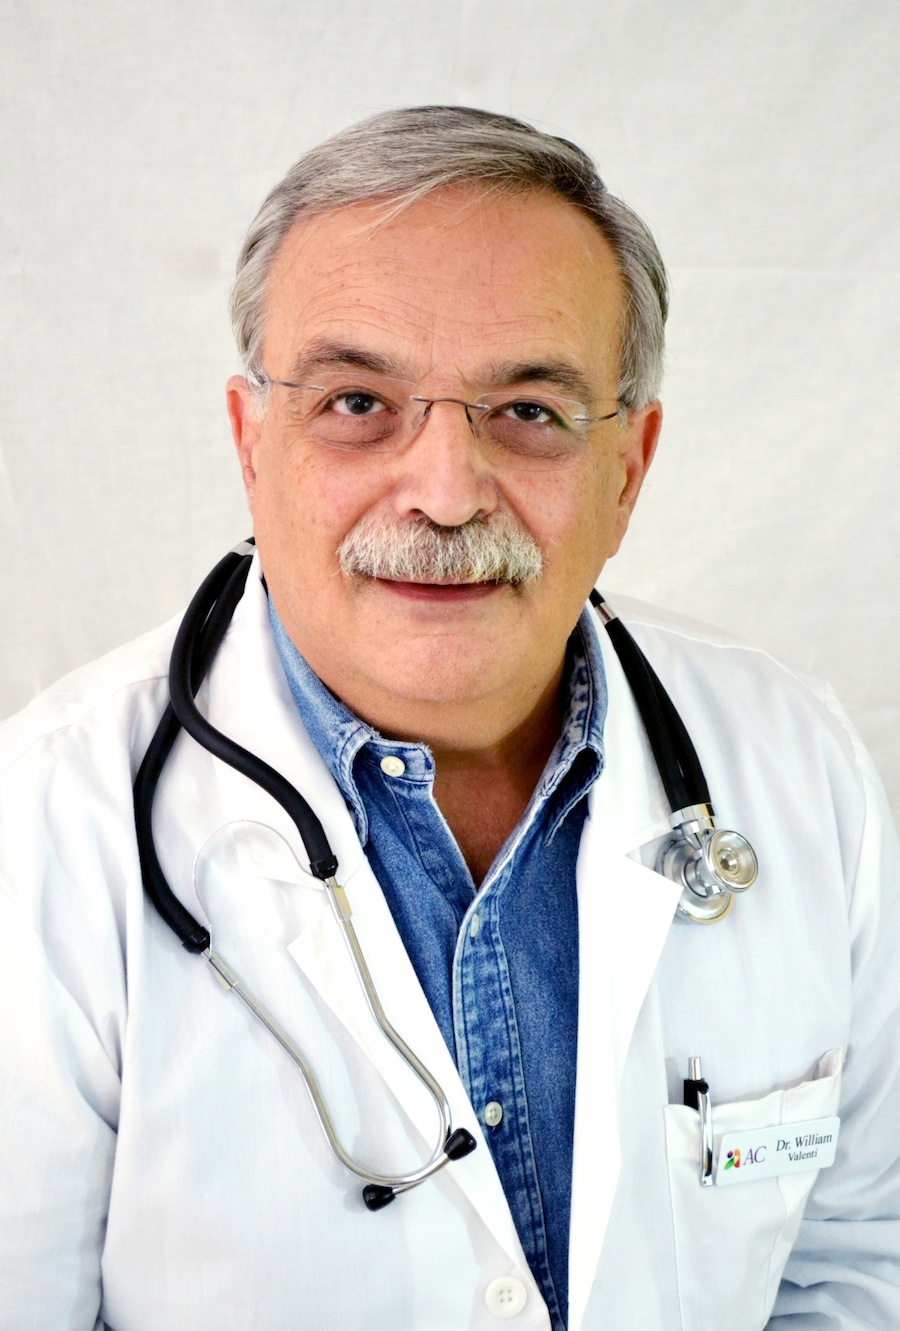 William Valenti, MD